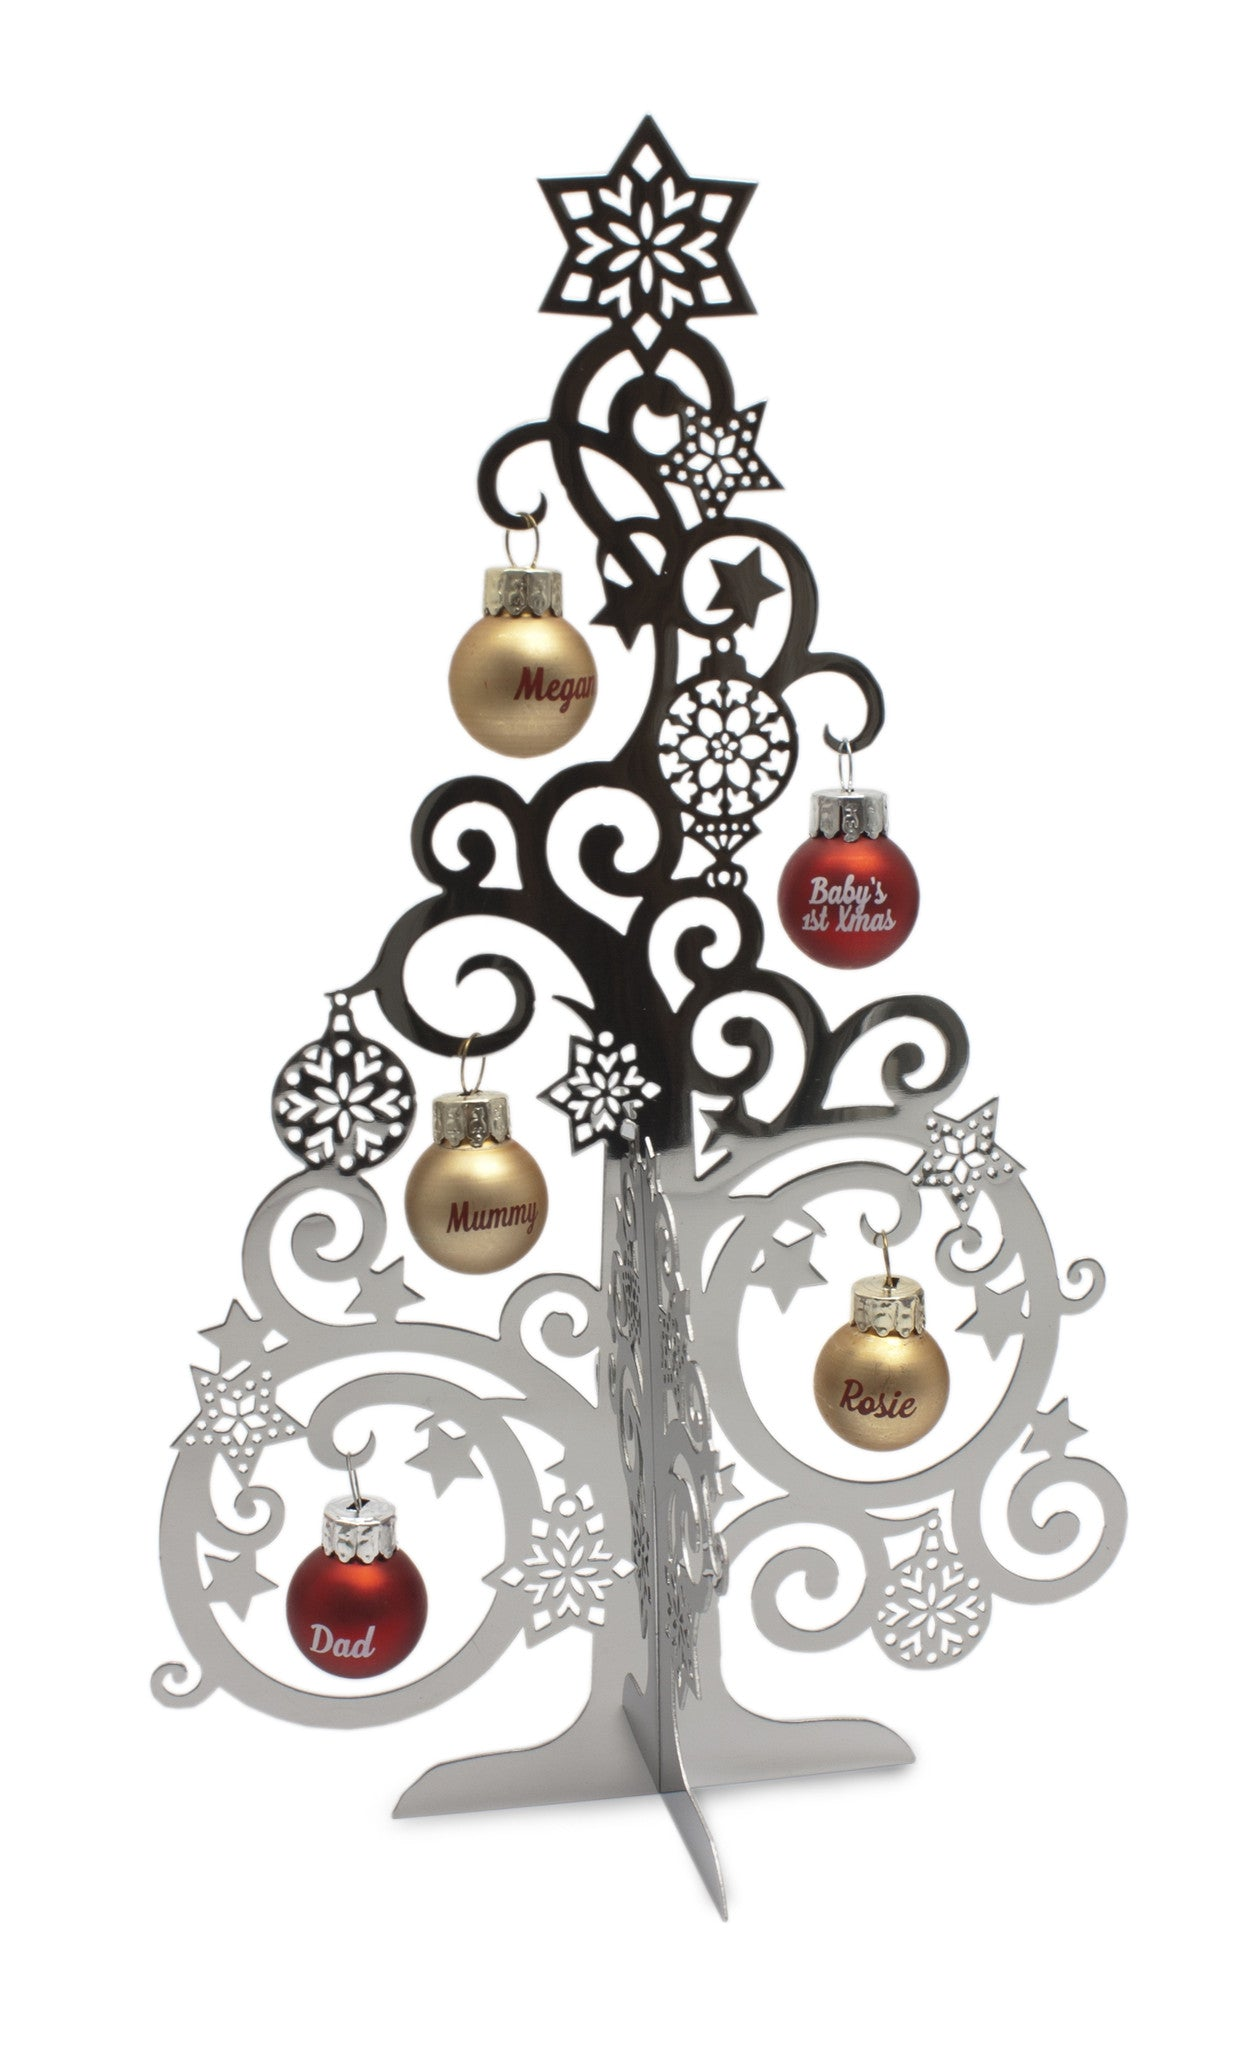 Gift horse h christmas family tree metal style